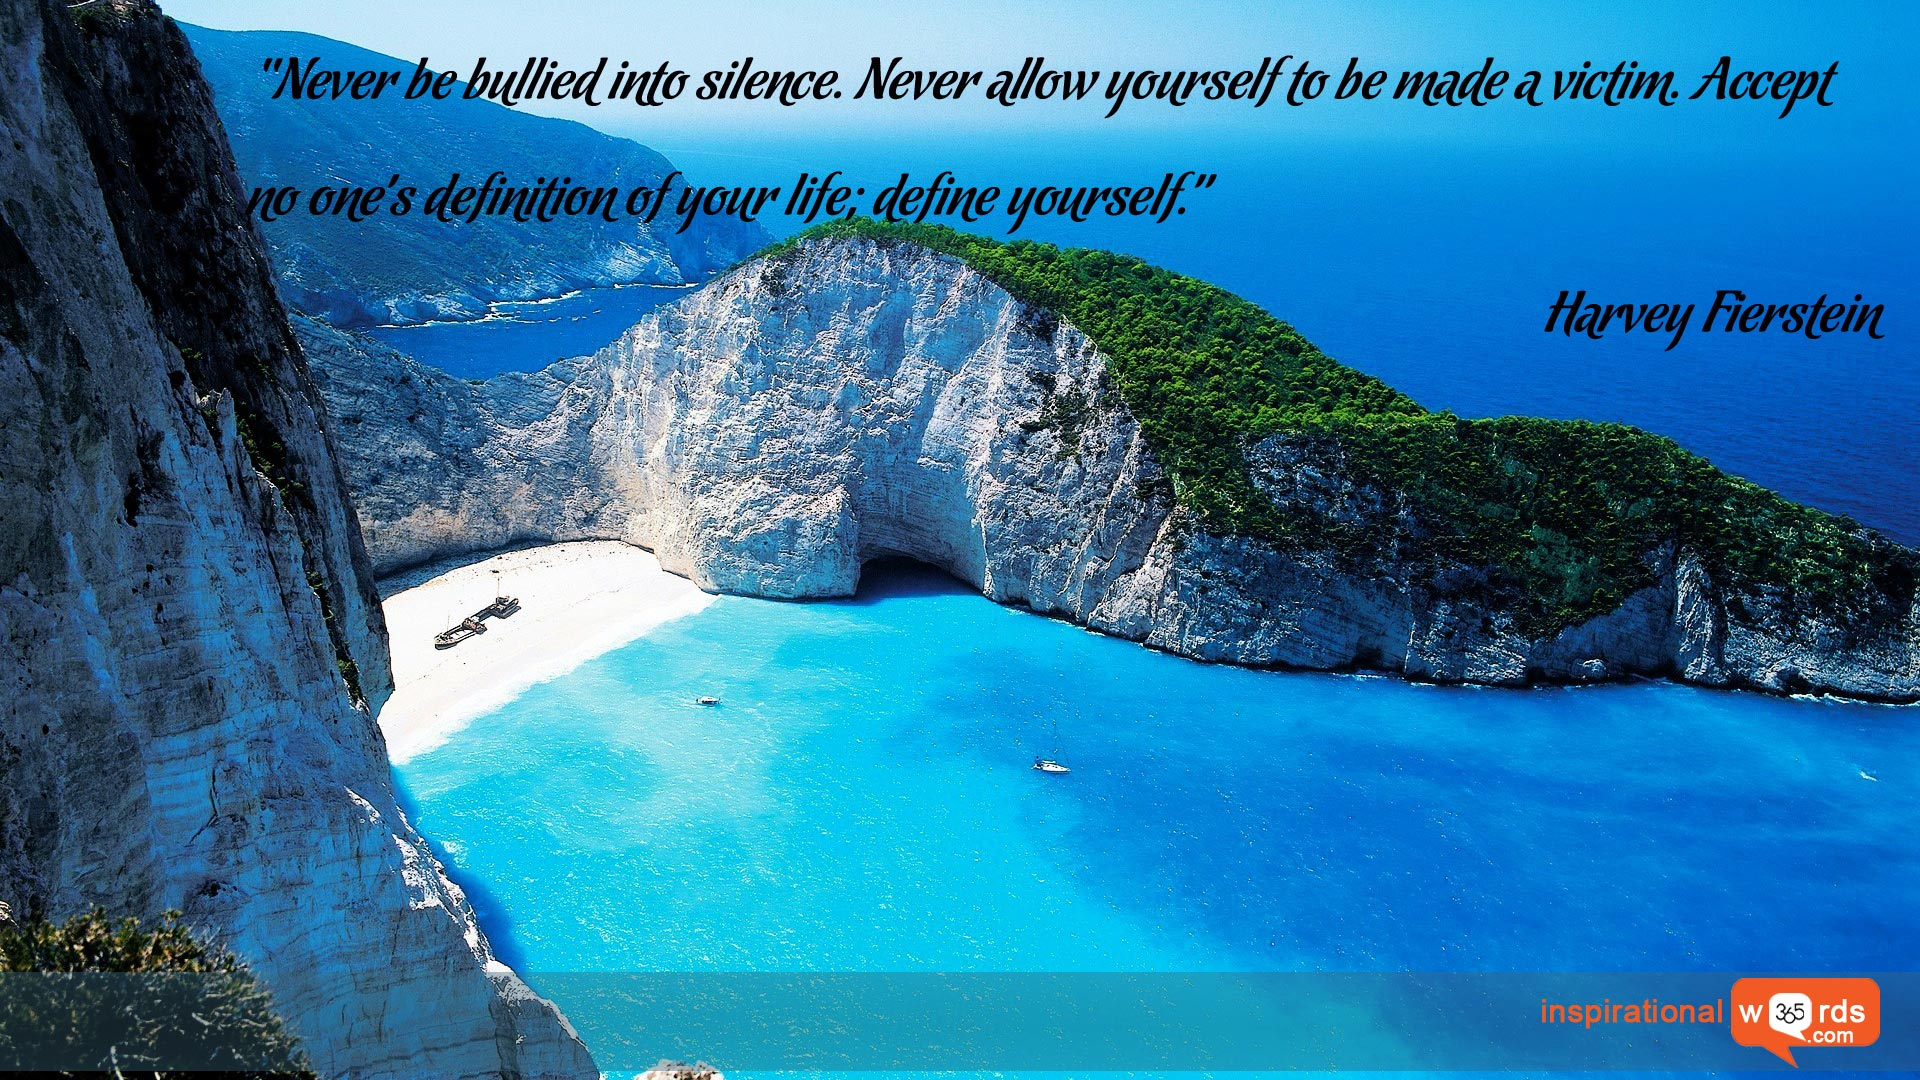 Inspirational Wallpaper Quote by Harvey Fierstein